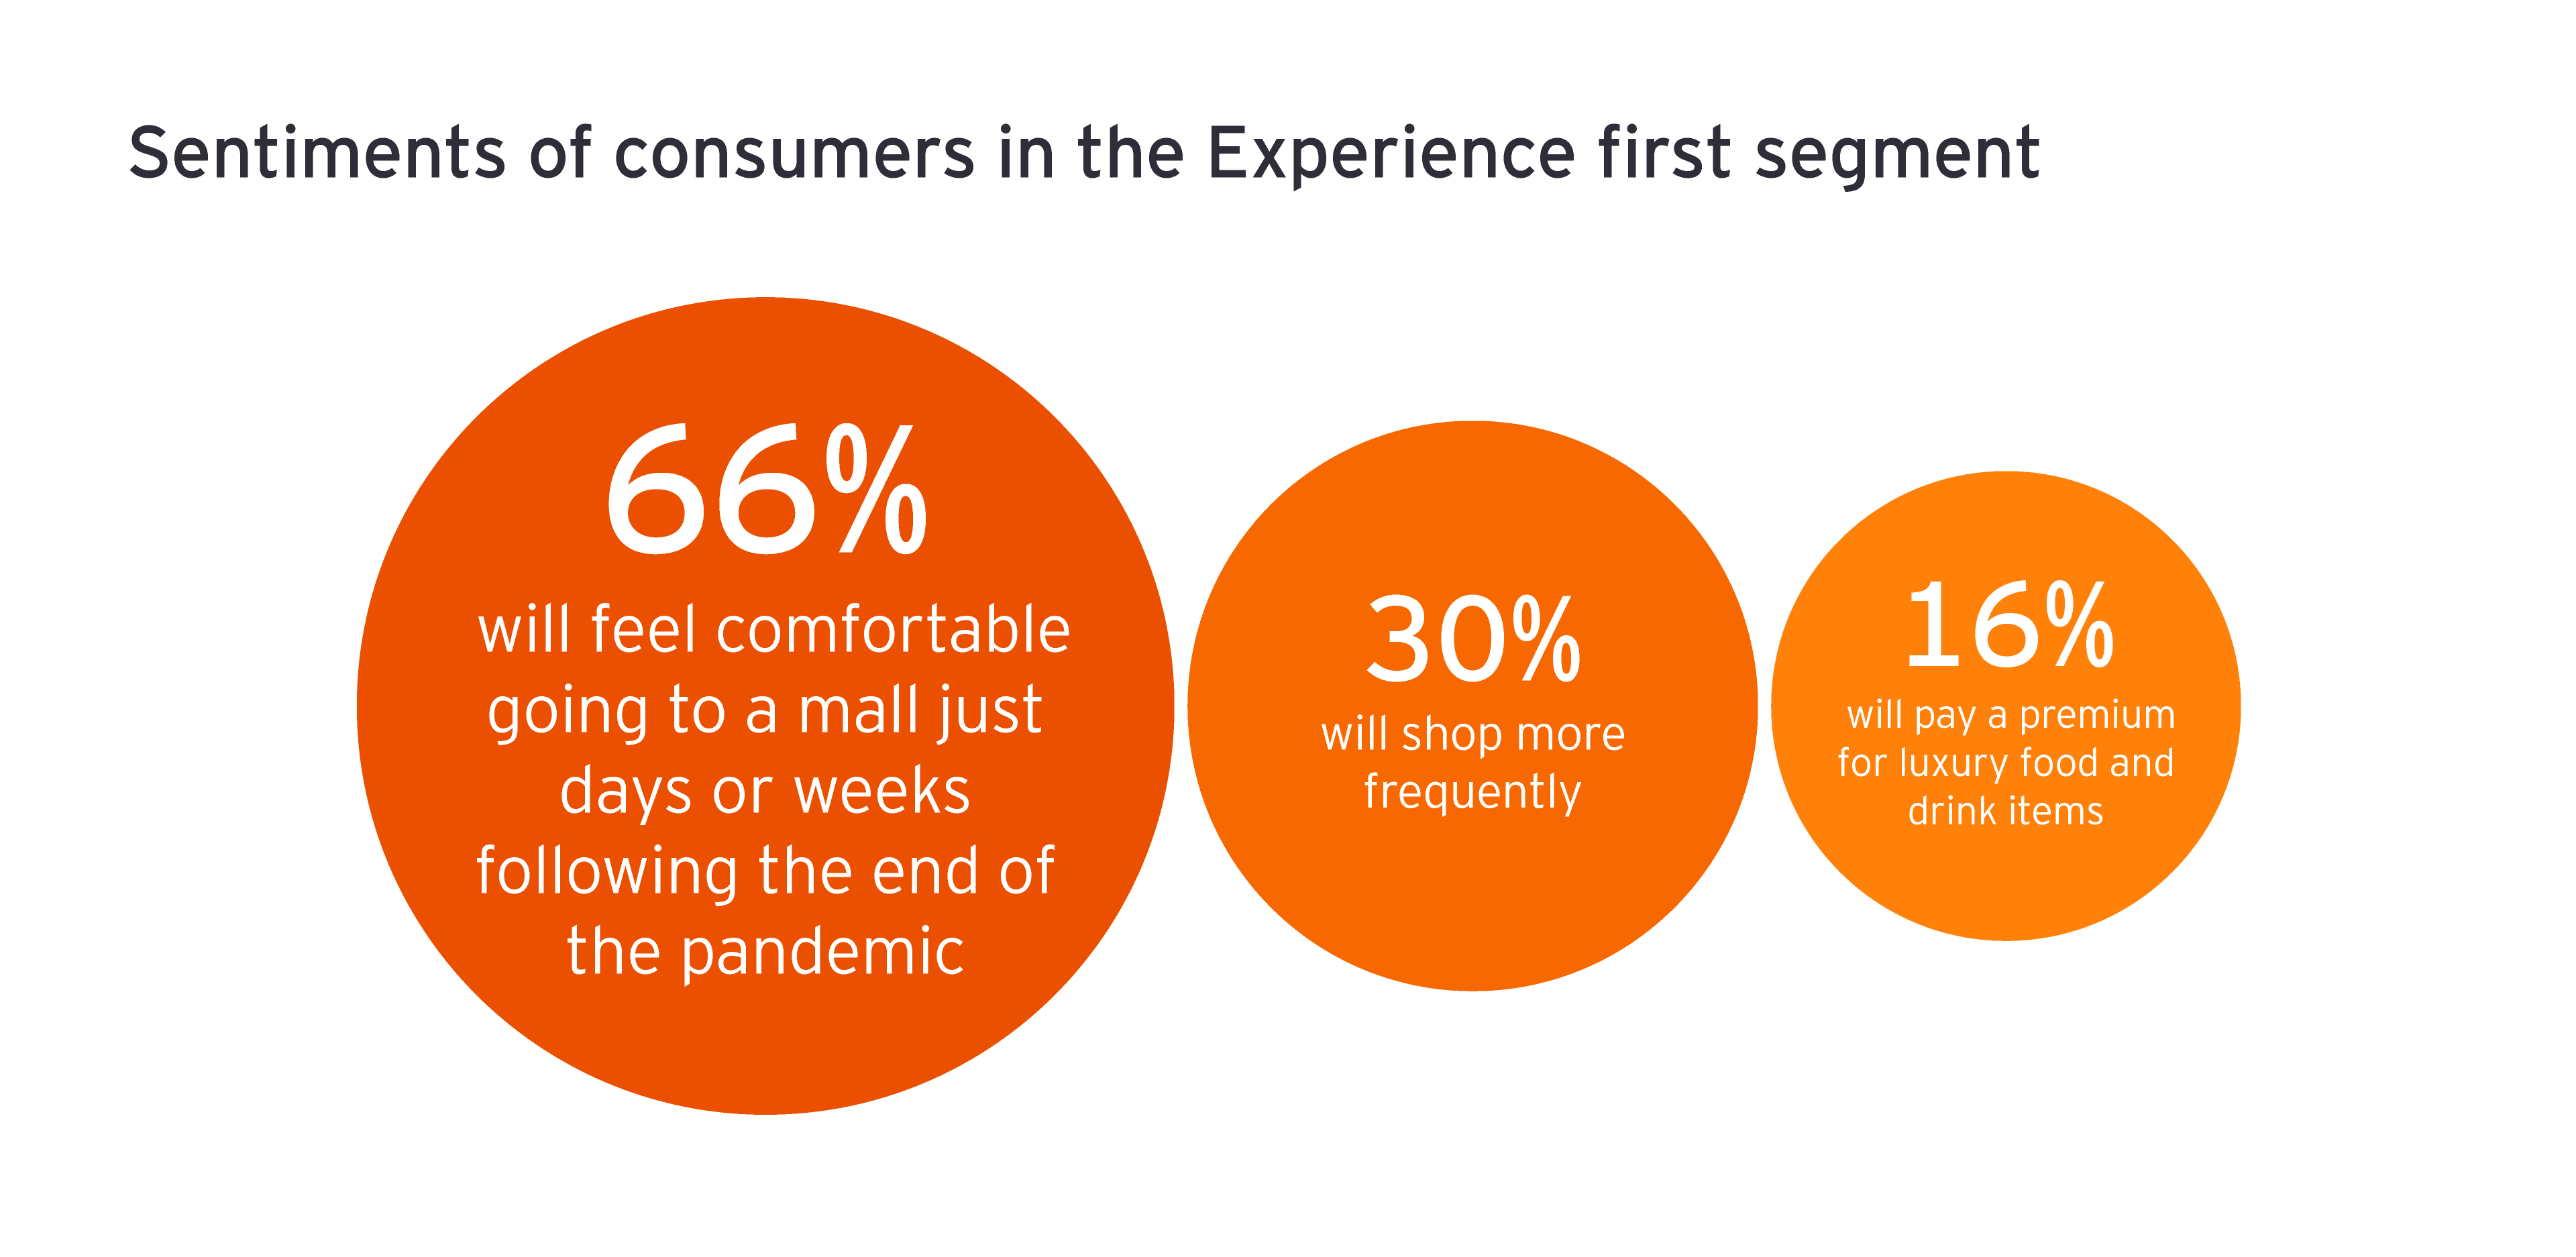 Sentiments of consumers in the Experience first segment